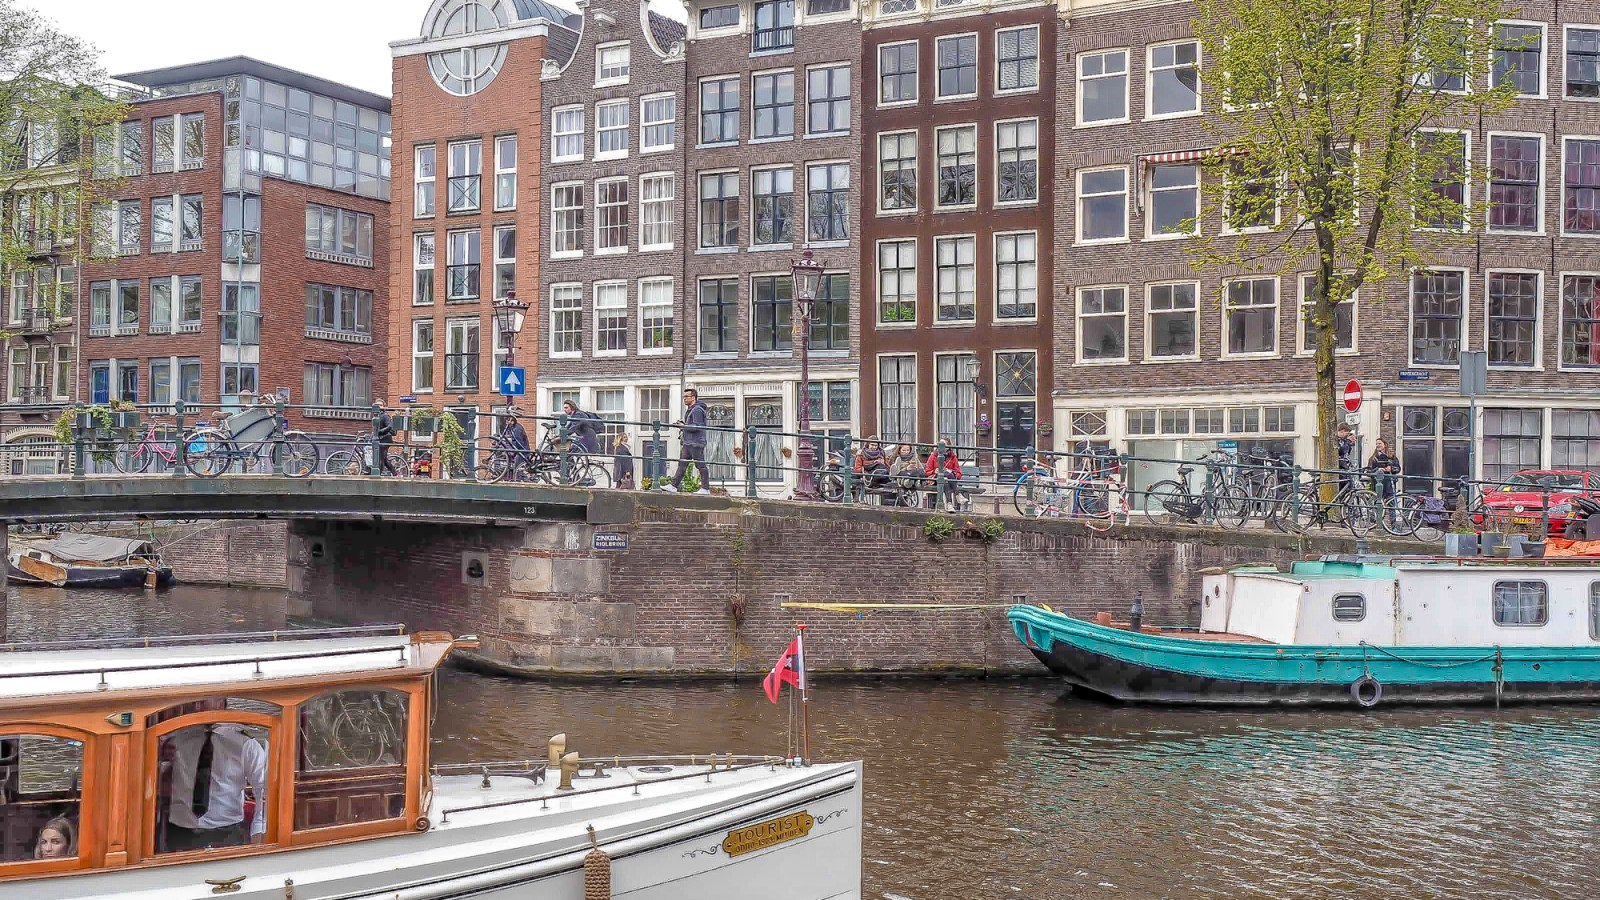 3 Days in Amsterdam | Netherlands | Van Gogh Museum | Rijksmuseum | Heineken Experience | Anne Frank House | Canals | I amsterdam sign | Keukenhof flower tulip gardens | Windmills | Bols experience | brown cafe | red light district | beer